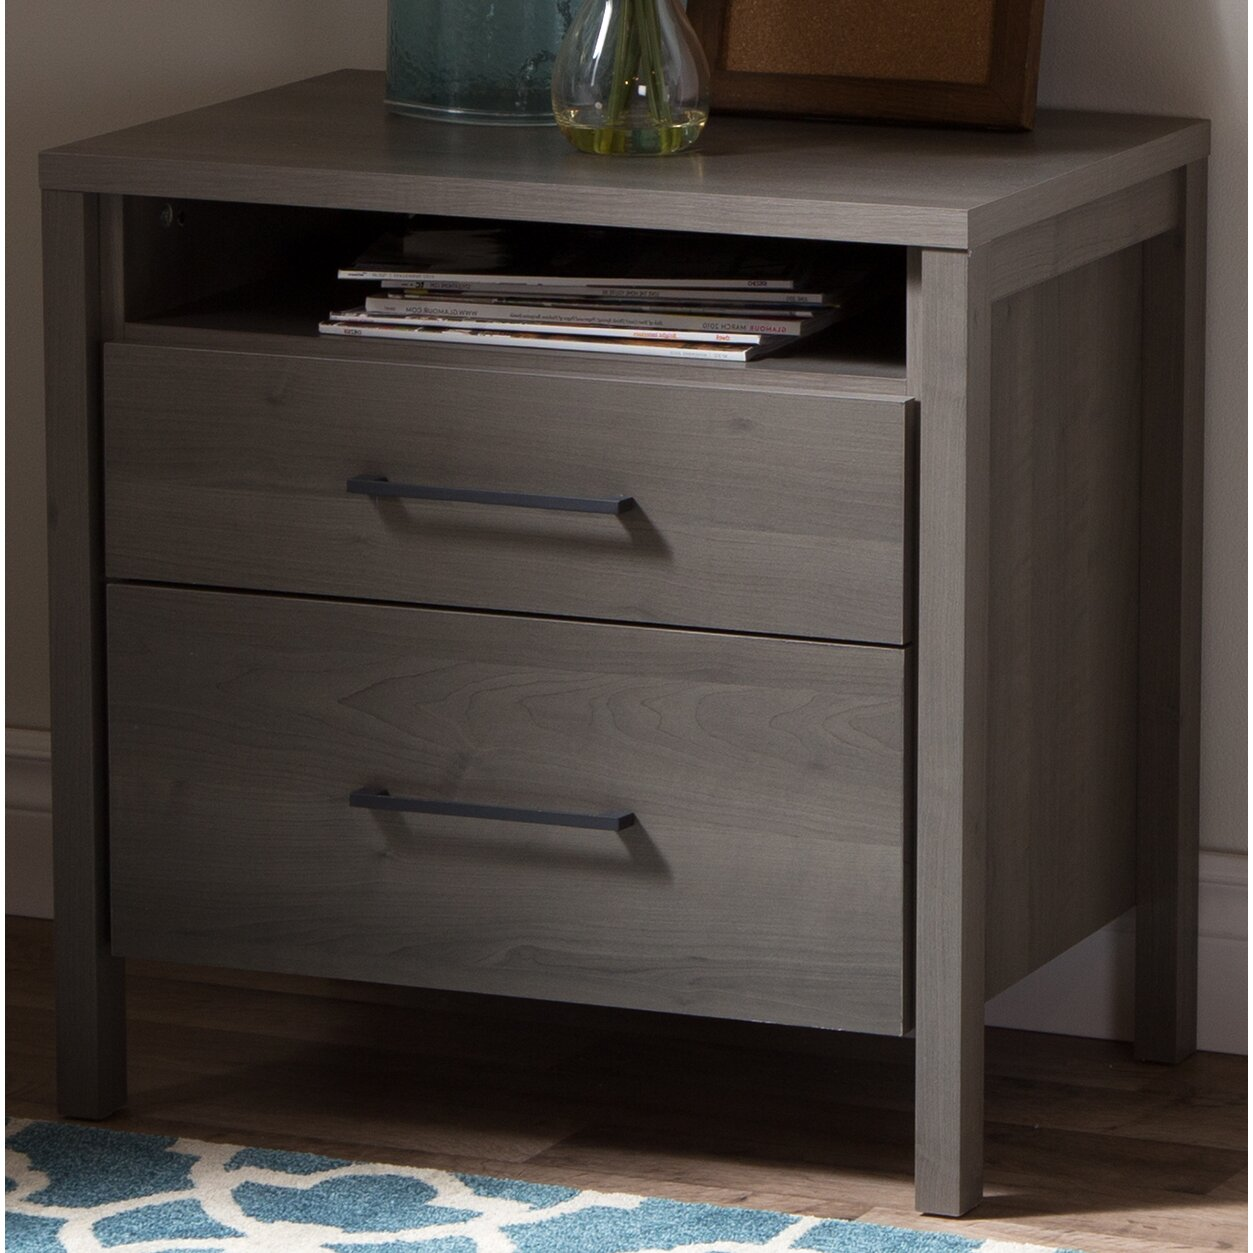 South shore gravity 2 drawer nightstand reviews wayfair - Pictures of nightstands ...